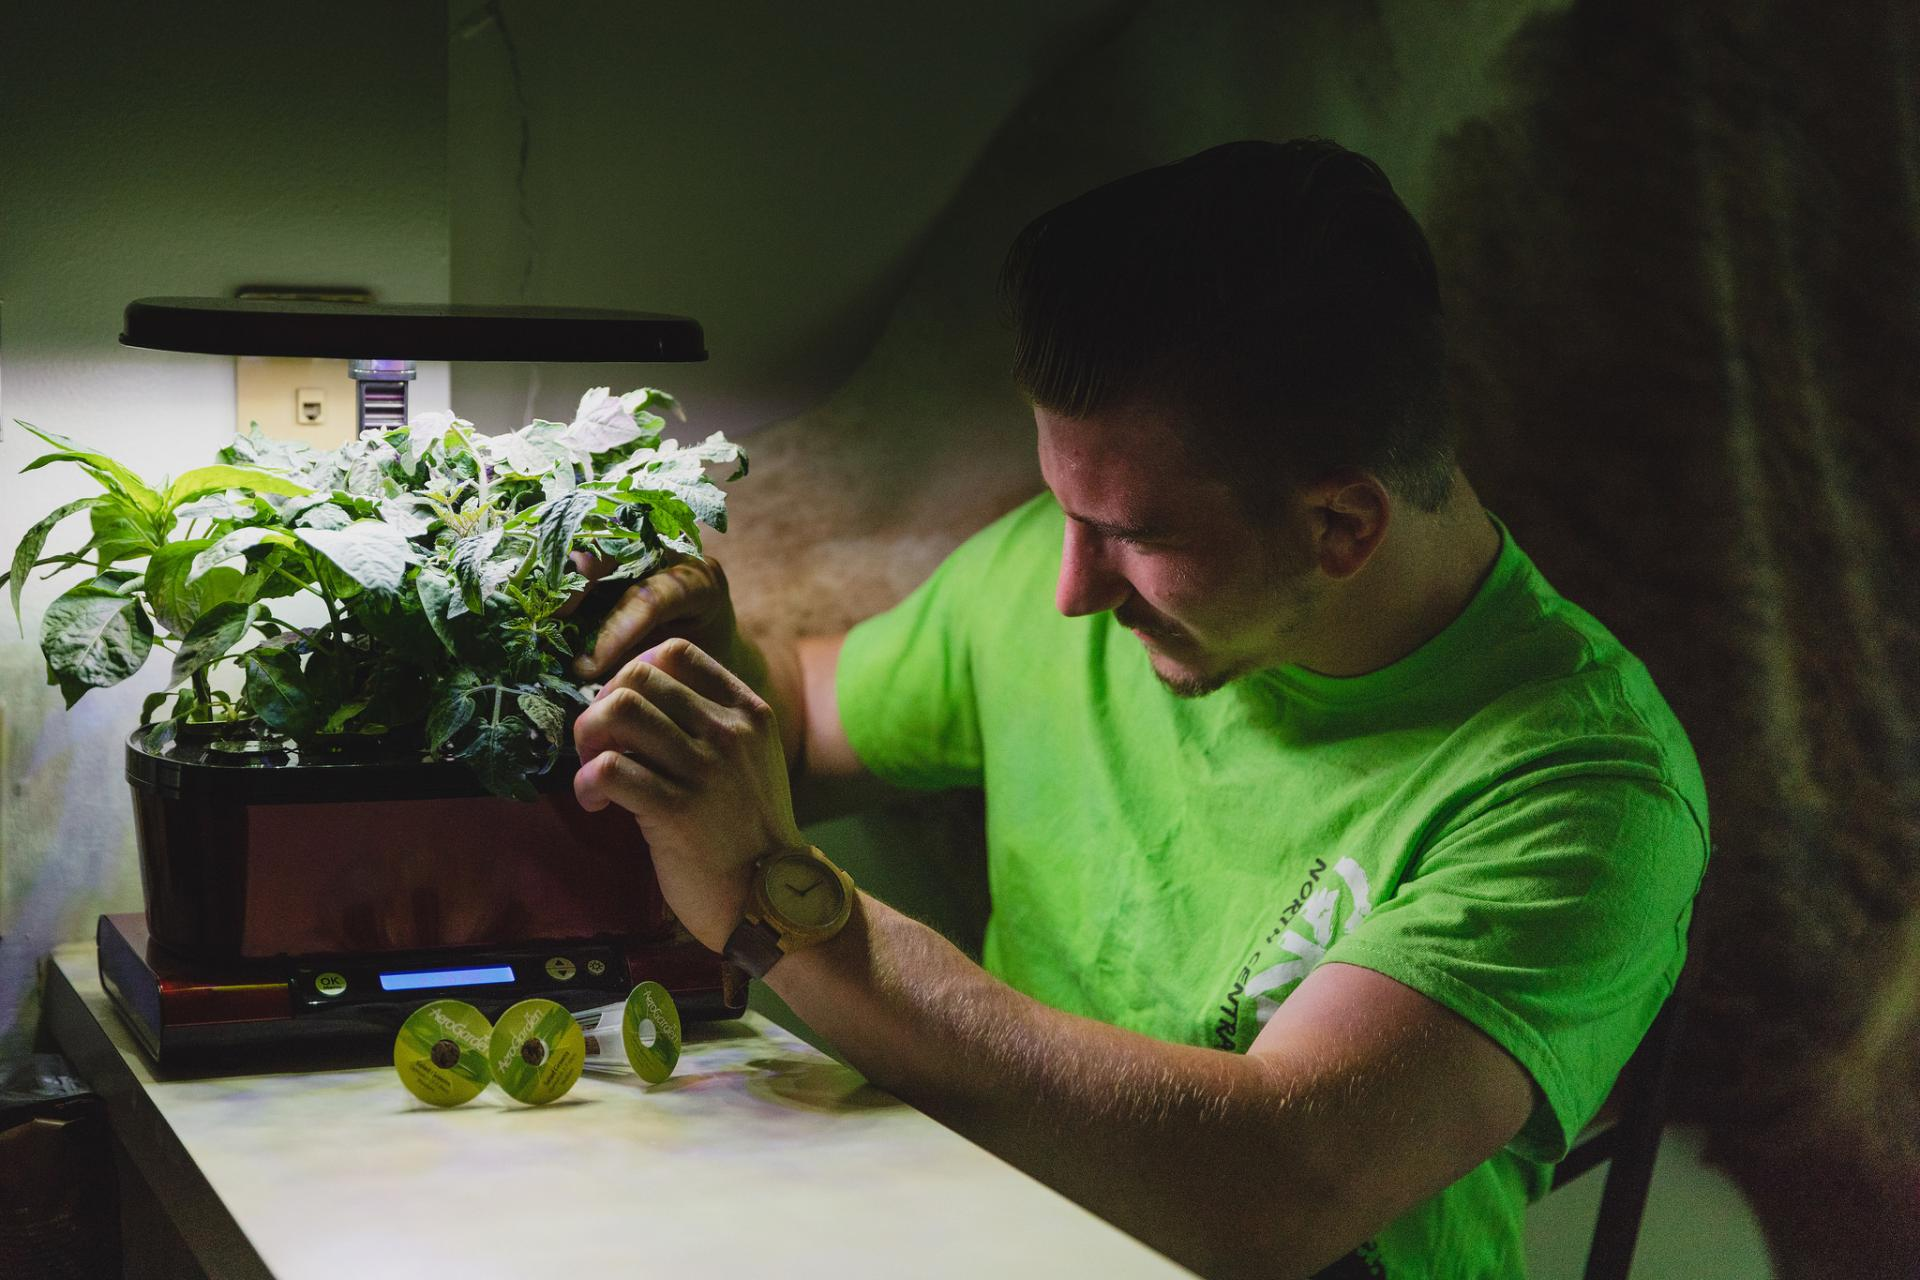 Brandon Malone works on the hydroponic unit in his home.